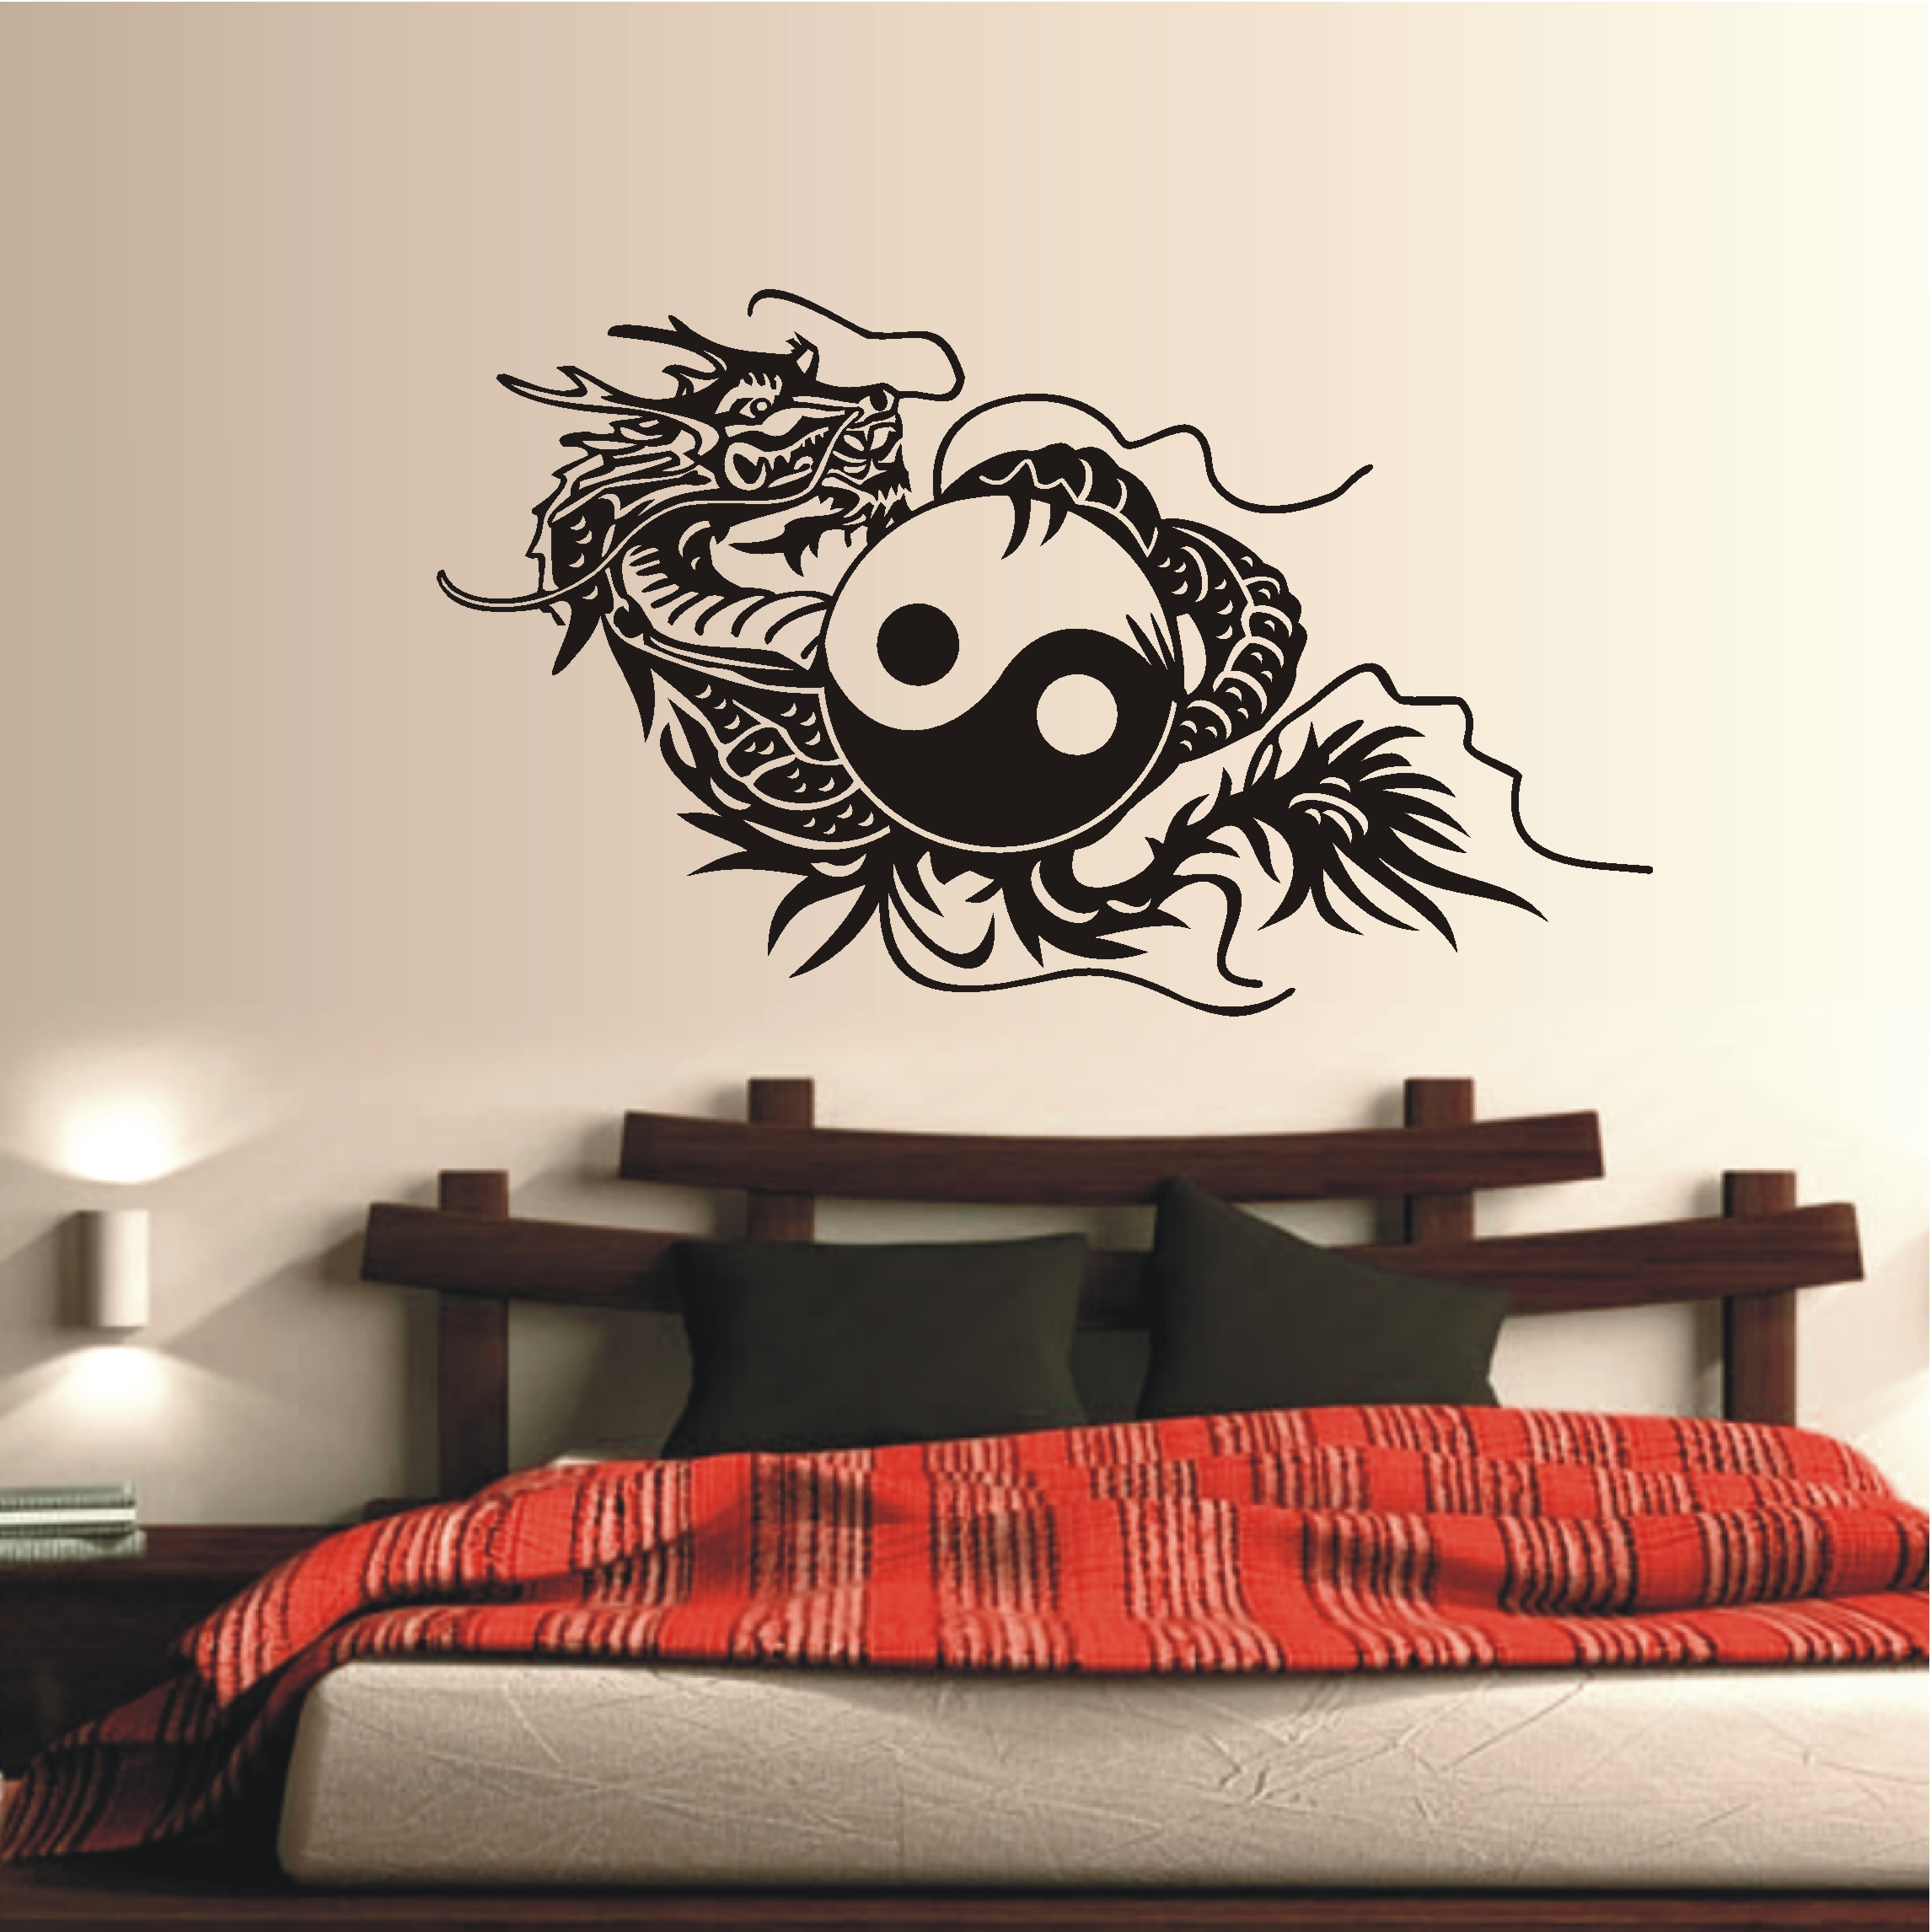 deko shop wandtattoo yin yang drache deko shop. Black Bedroom Furniture Sets. Home Design Ideas